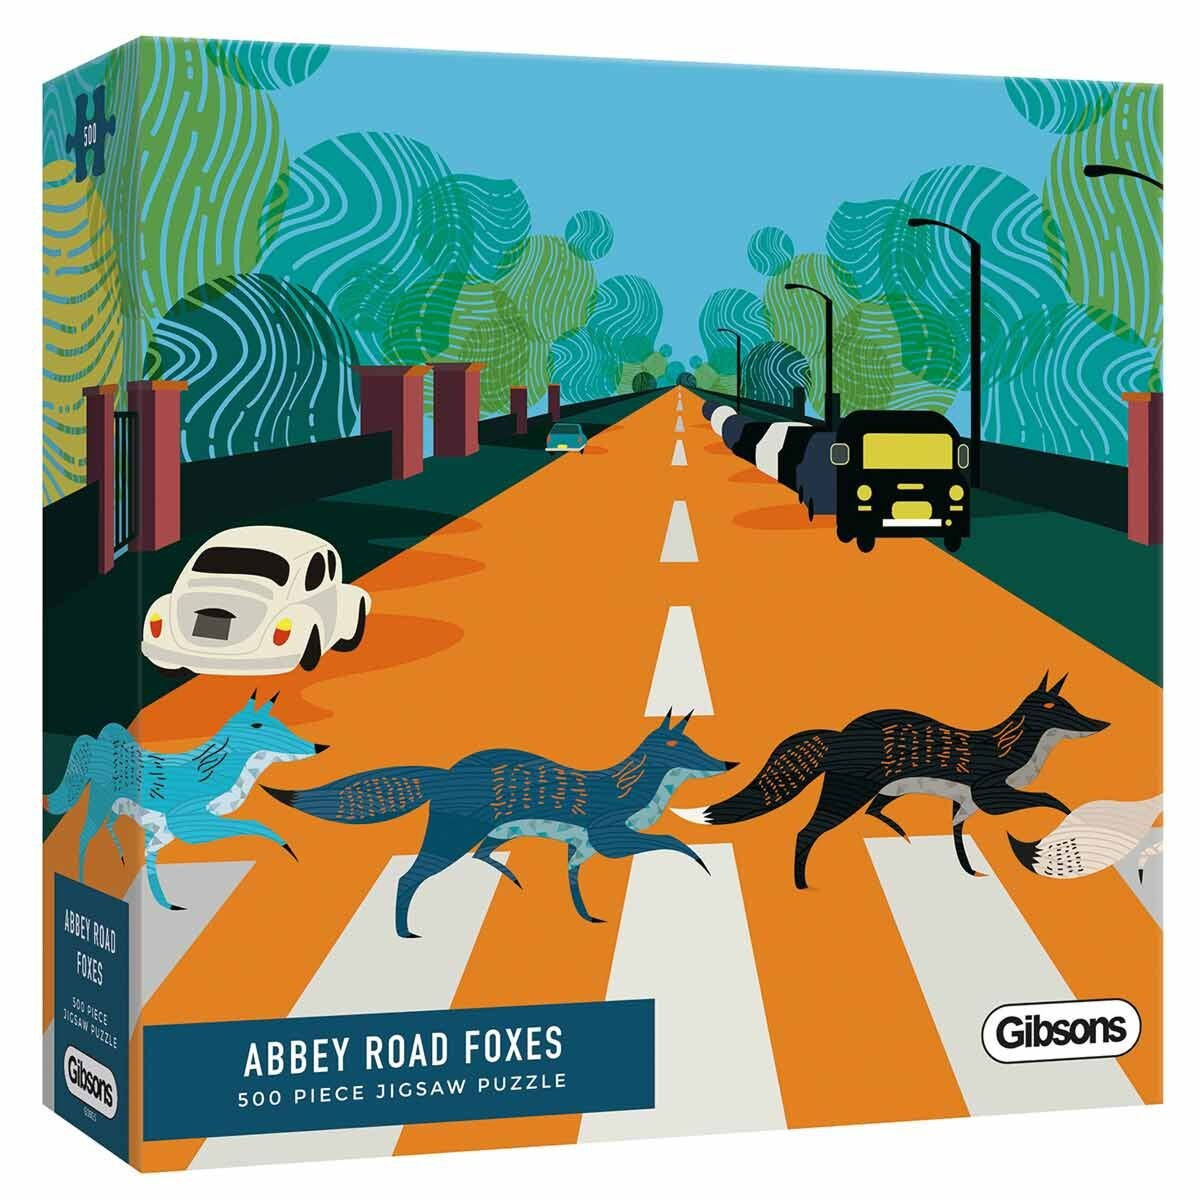 Gibsons Abbey Road Foxes 500 Piece Jigsaw Puzzle